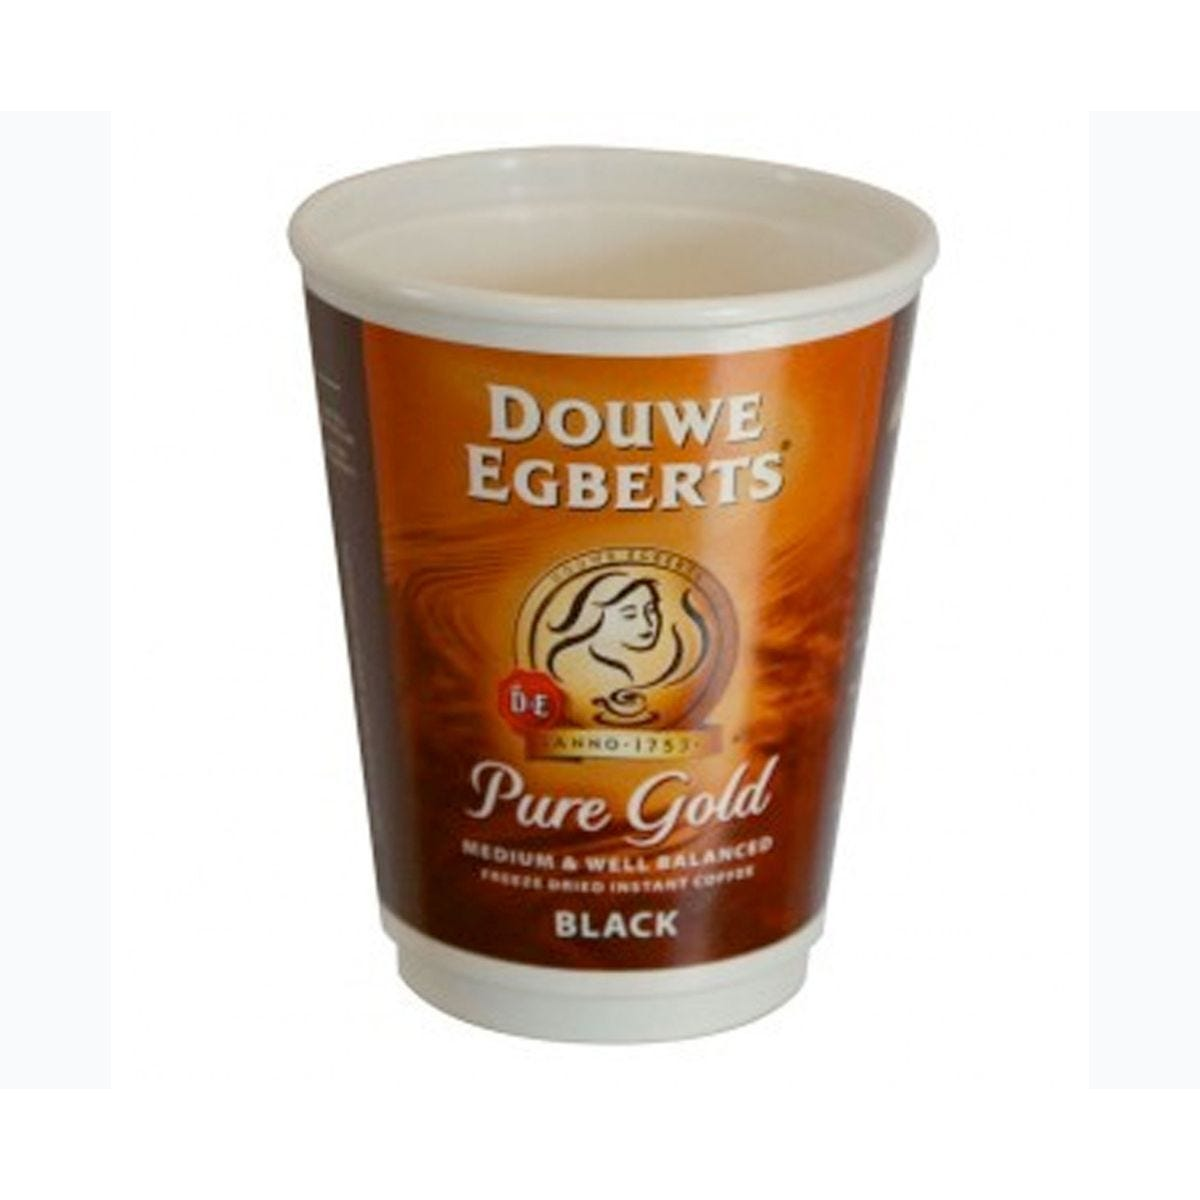 Douwe Egberts Pure Gold Black Coffee 12oz Cups 2GO 150 Cups